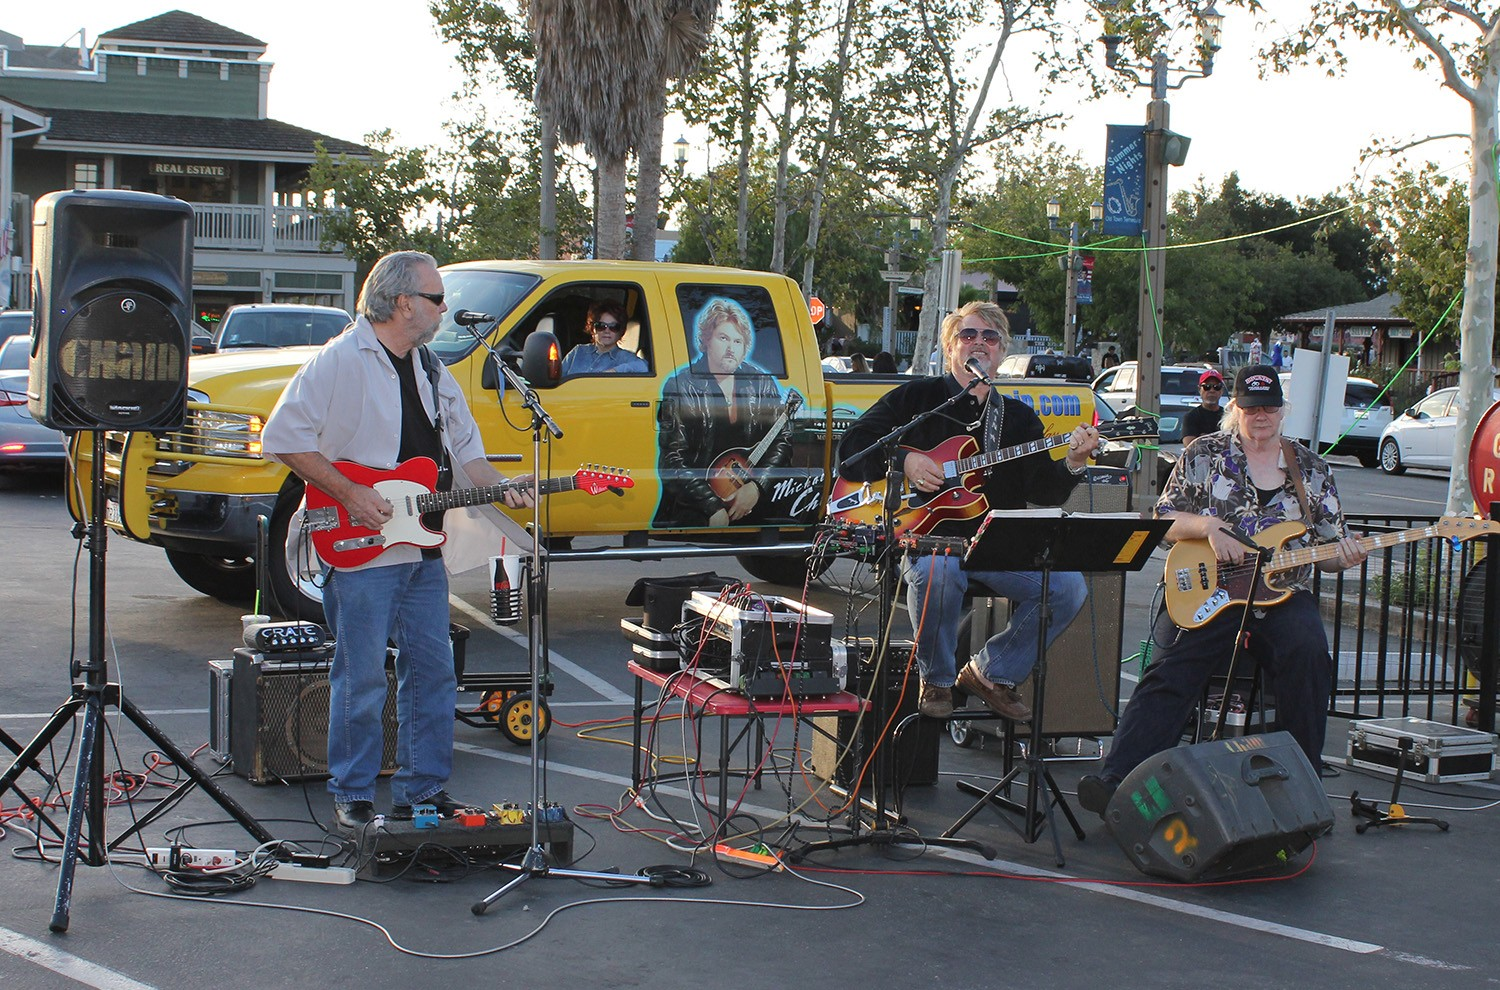 Michael Chain Band performs at Hot Summer Nights 2014 in Temecula